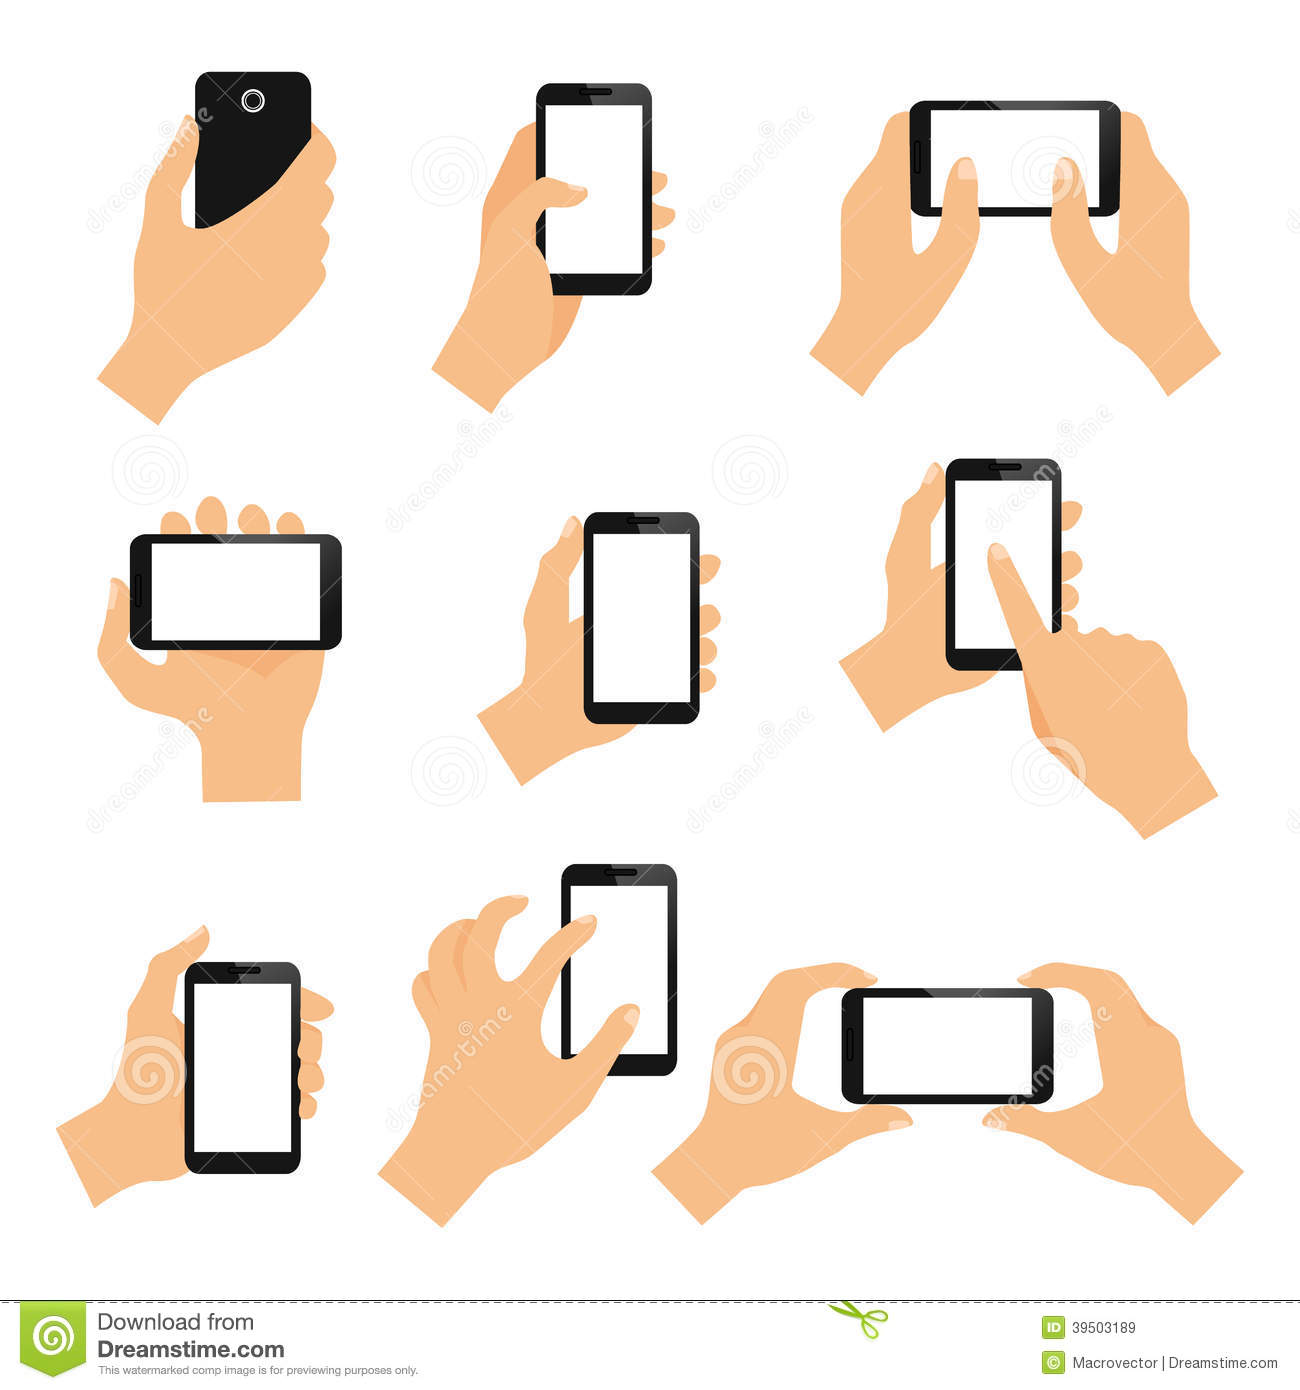 Touch screen hand gestures